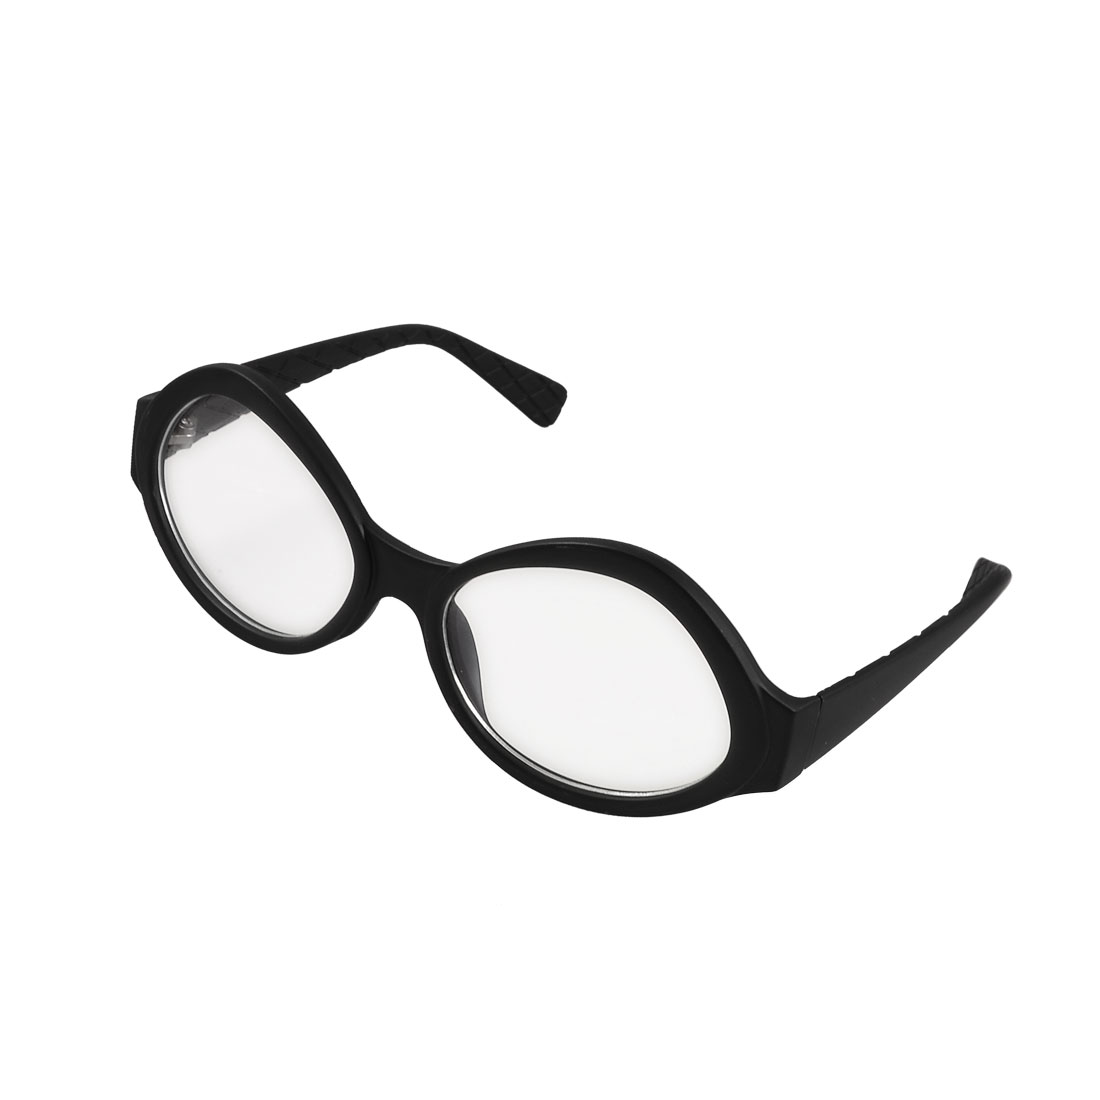 Round Black Plastic Temples Rimmed Multi Coated Lens Spectacles for Lady Woman